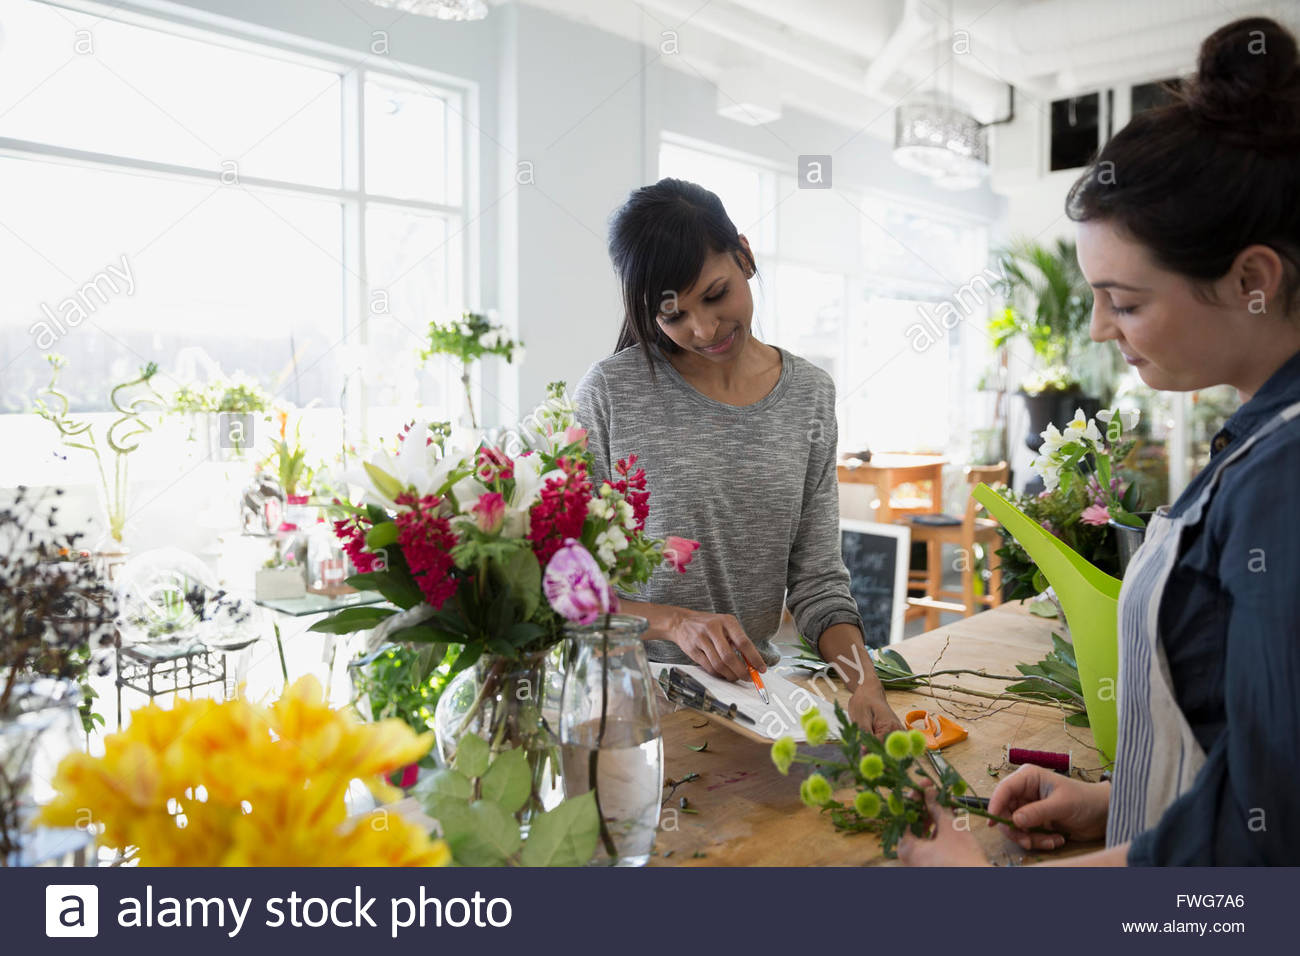 Florists with clipboard in flower shop - Stock Image